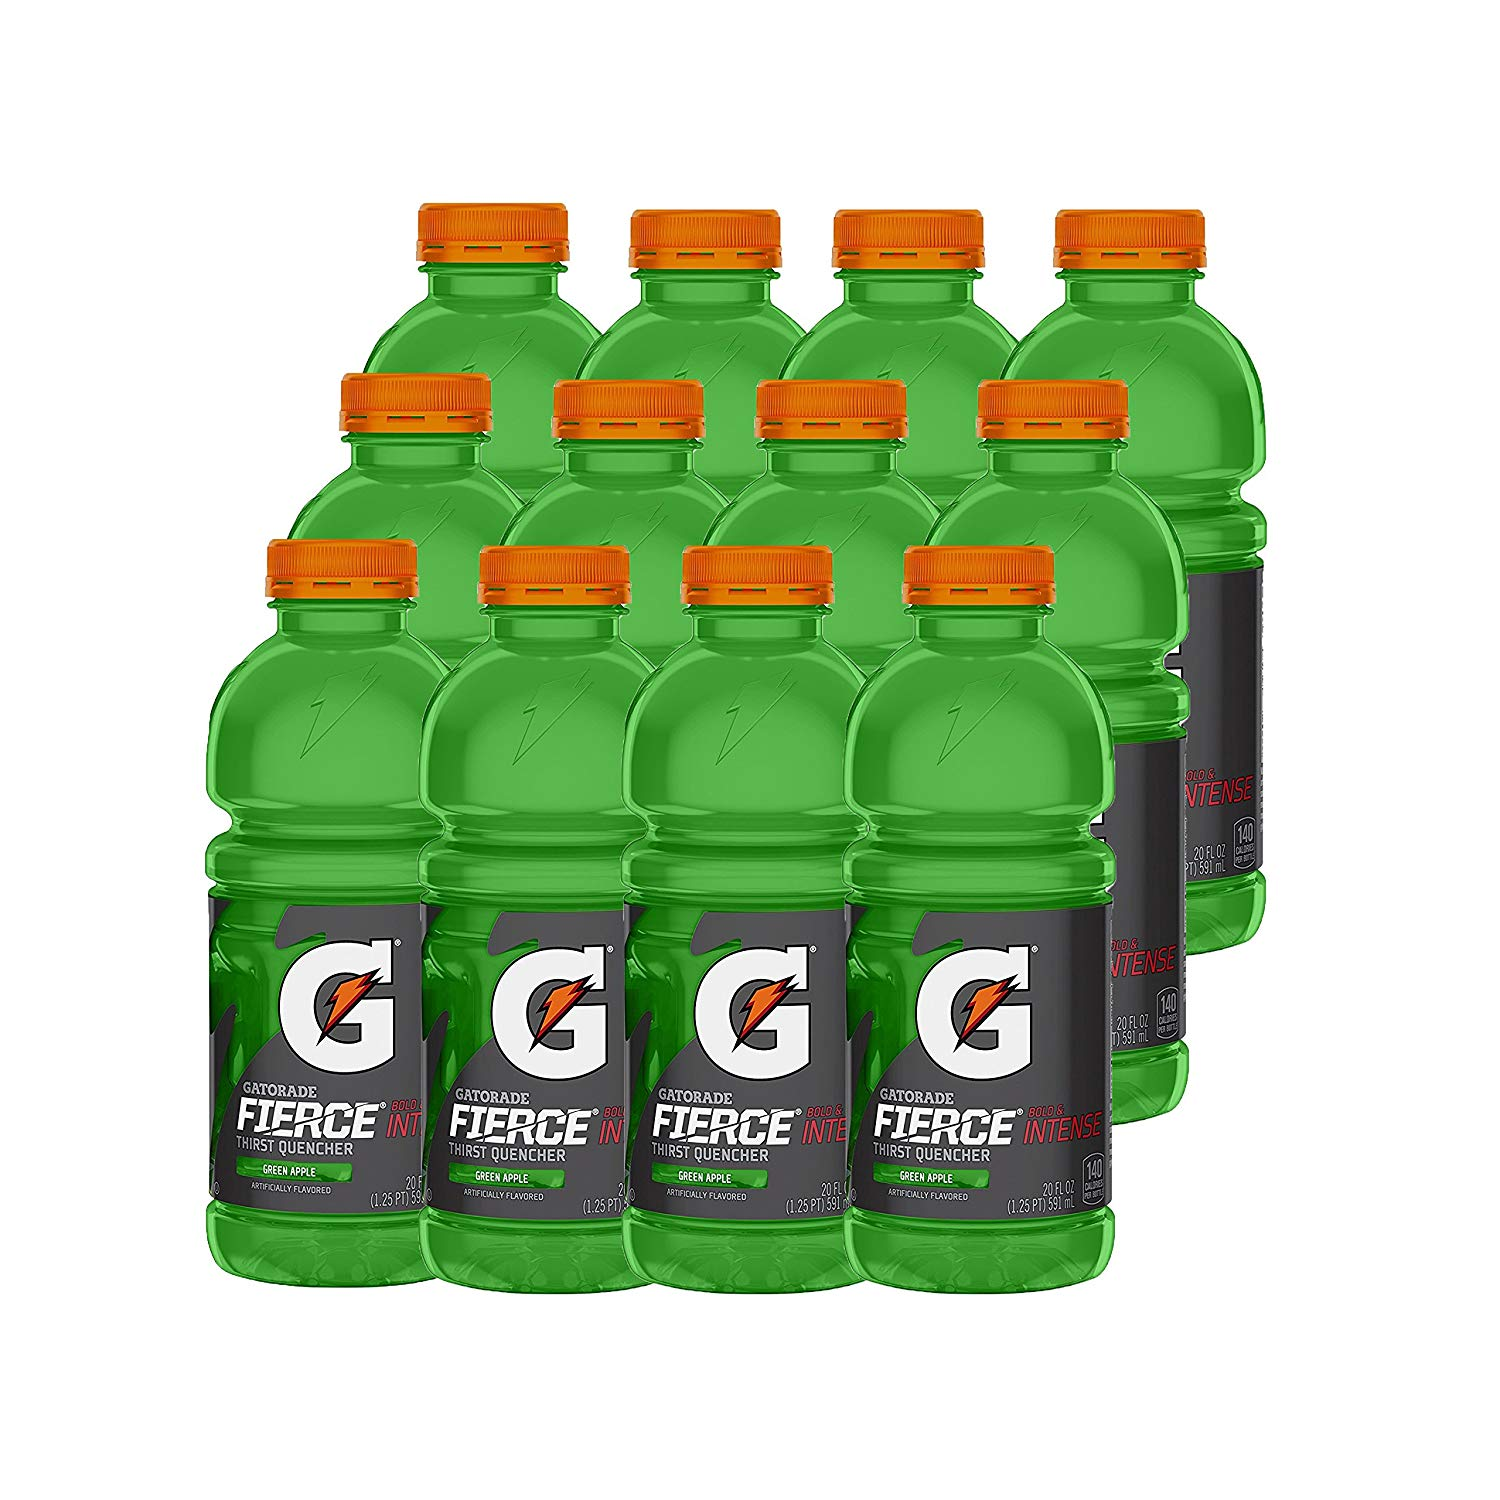 12-Pack of 20oz Gatorade Fierce Sports Drink (Green Apple) $5.62 or Less w/ S&S + Free Shipping ~ Amazon